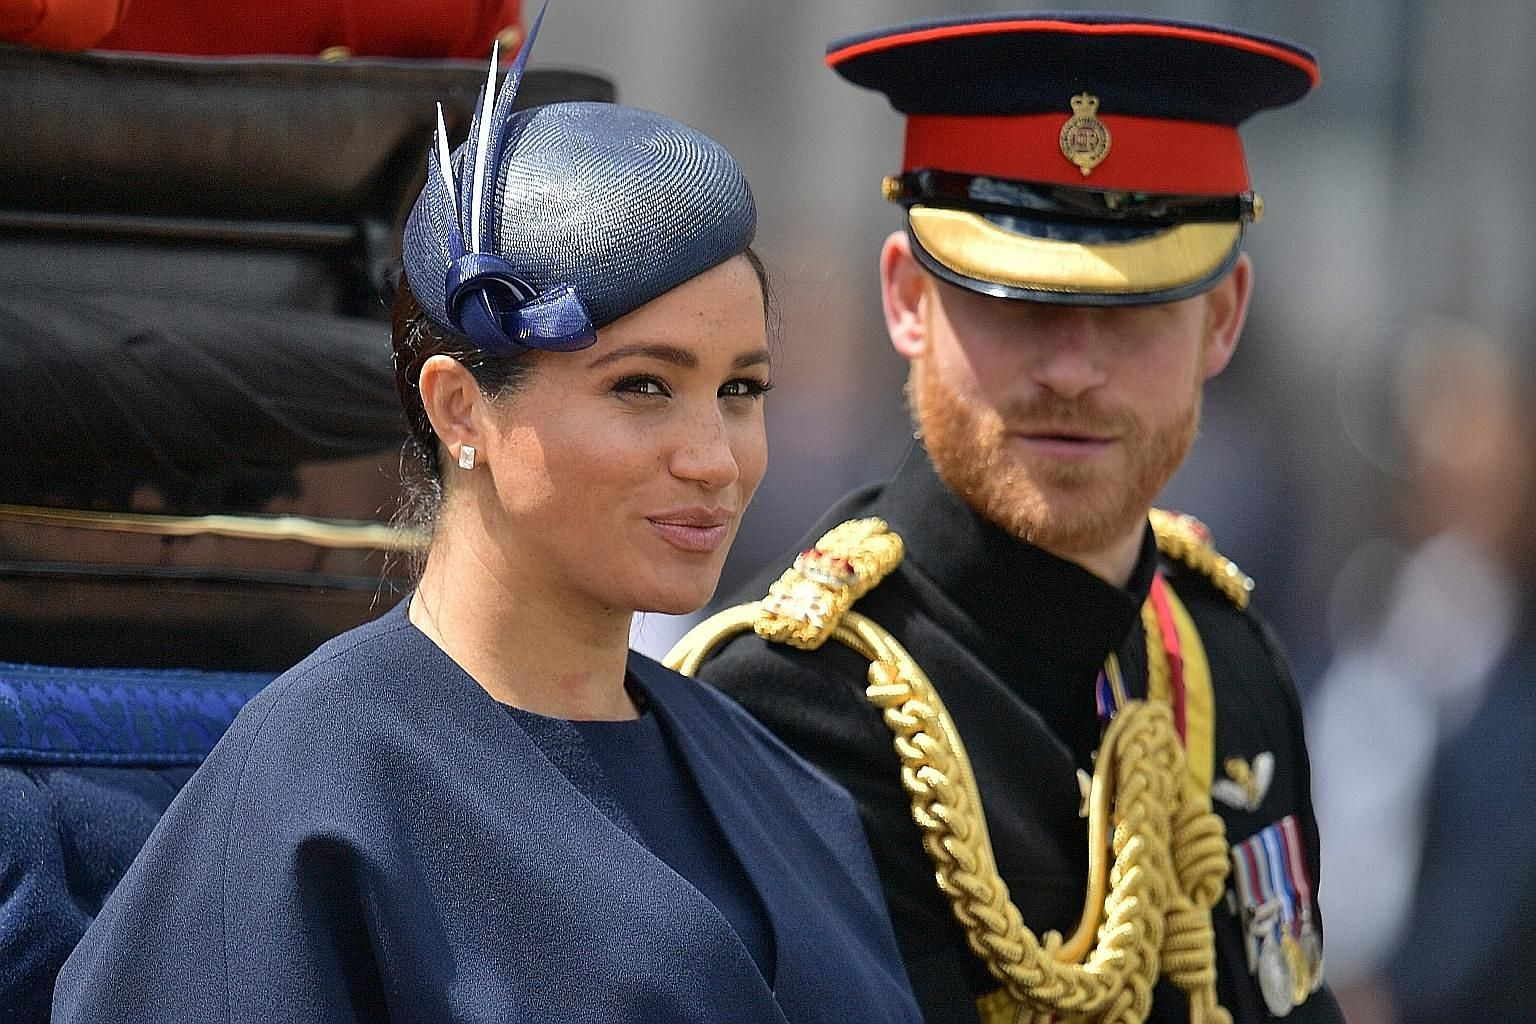 """Prince Harry and his wife Meghan will keep their titles of Duke and Duchess of Sussex but will no longer use their """"Royal Highness"""" titles. PHOTO: AGENCE FRANCE-PRESSE"""